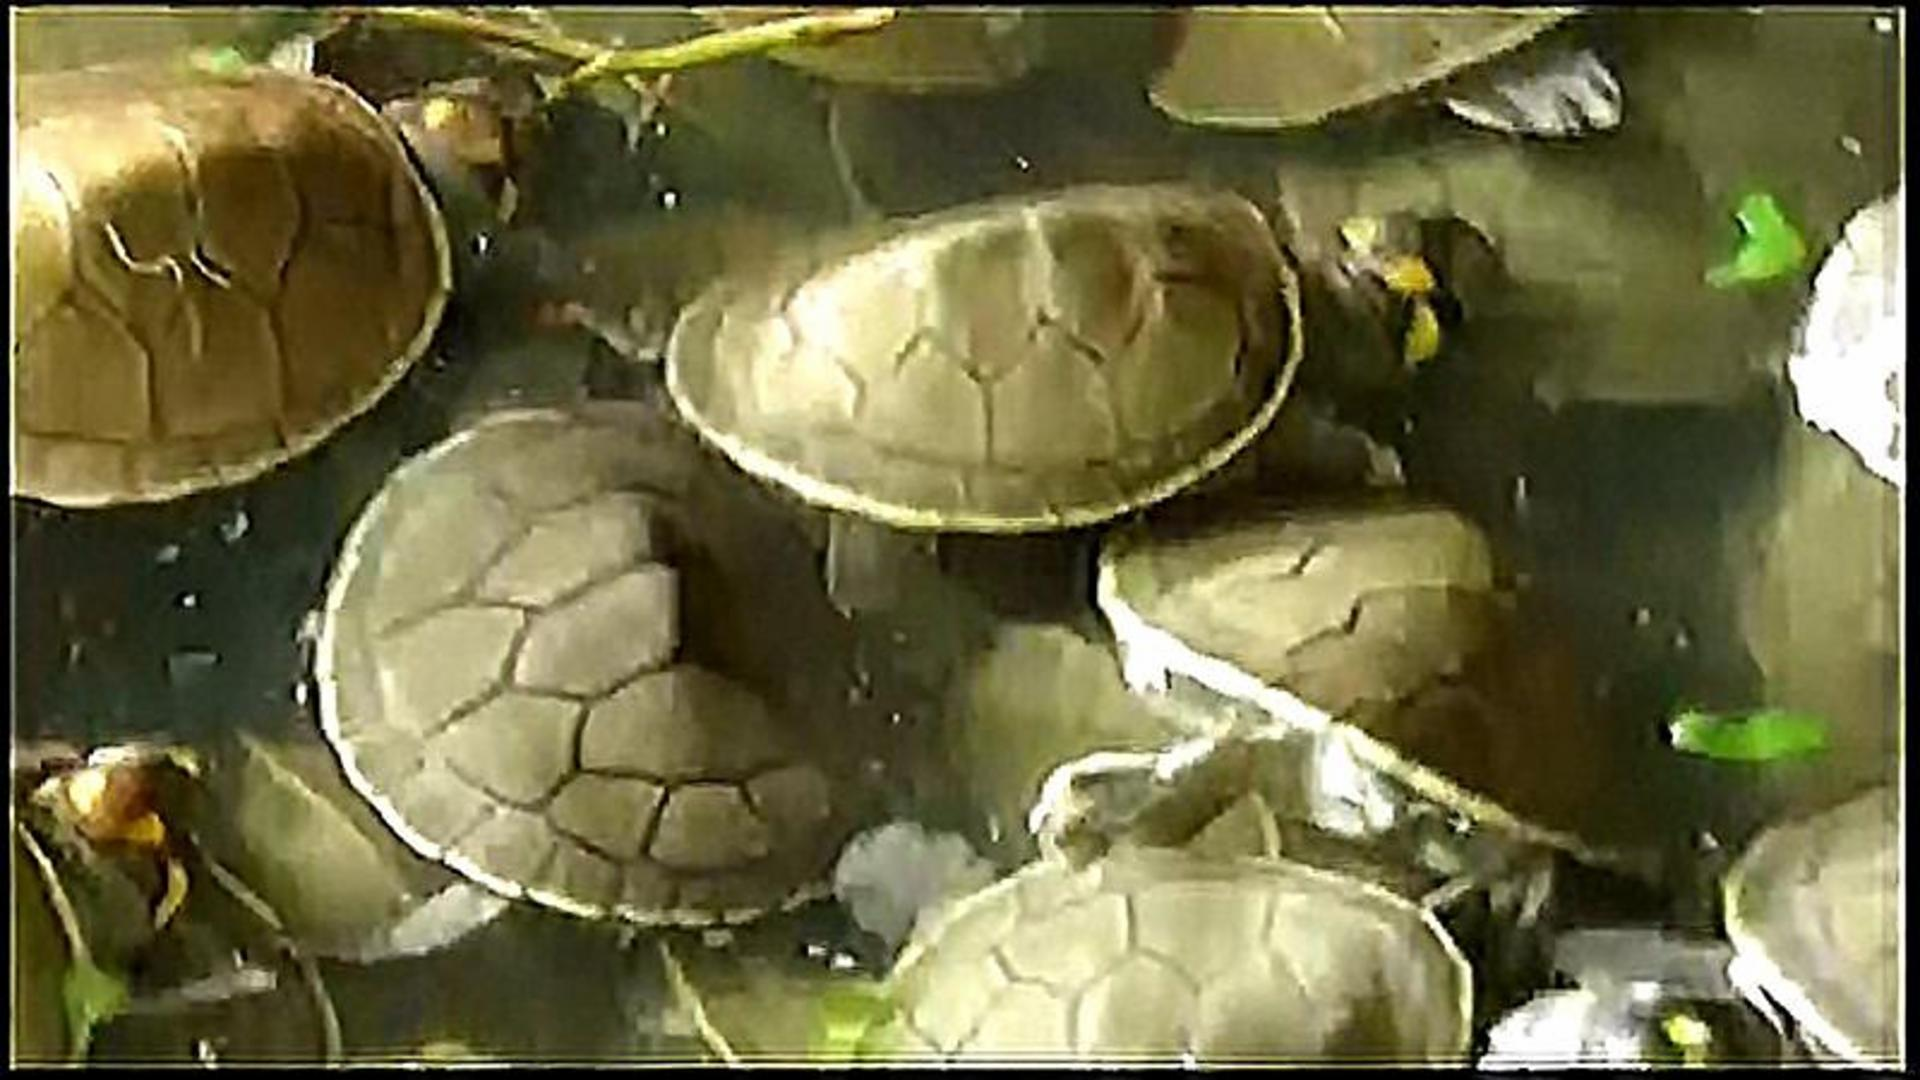 500,000 Baby Turtles Will Be Released To Help Save Vulnerable Species